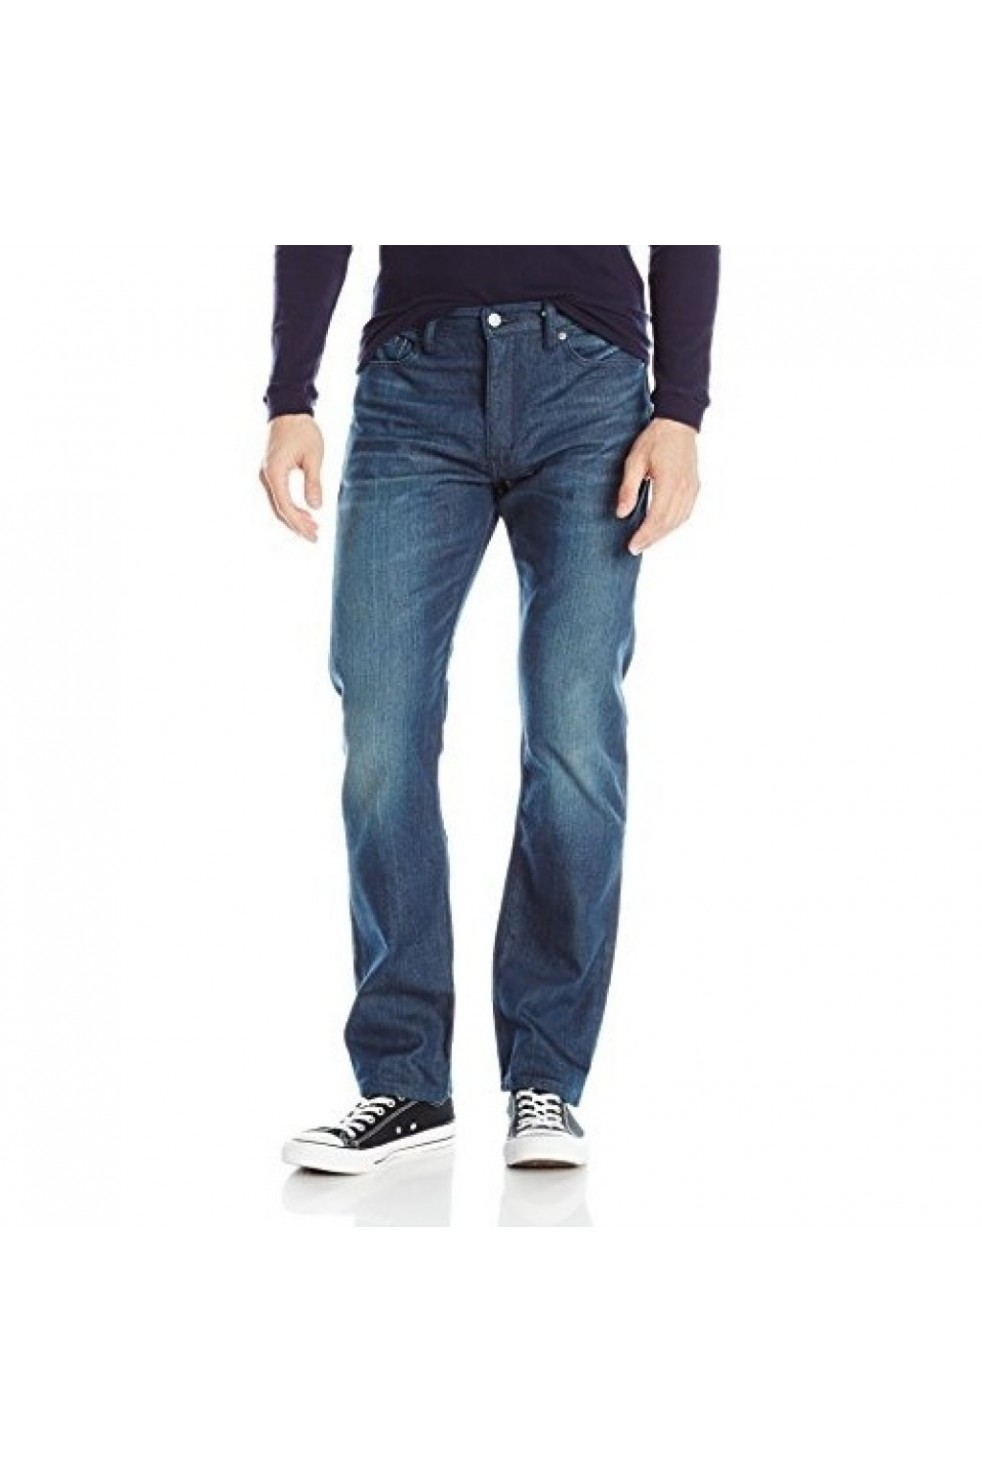 Levis-Erkek-Jean-Pantolon-513-Slim-Straight-Fit-08513-0647